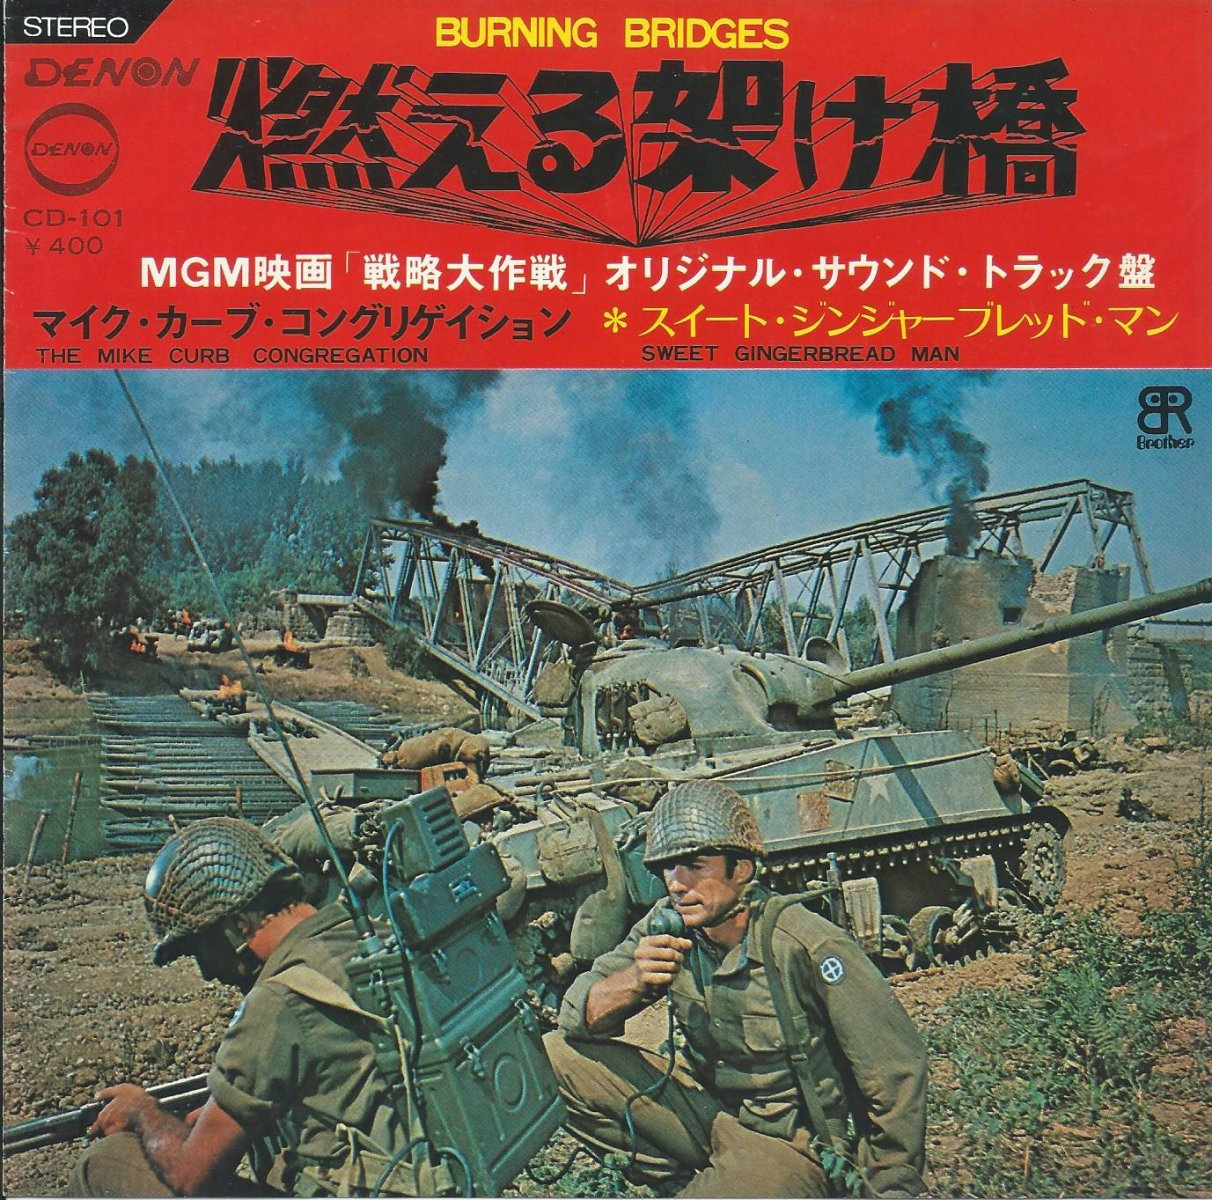 O.S.T.(戦略大作戦) マイク・カーブ・コングリゲイション THE MIKE CURB CONGREGATION ‎/ 燃える架け橋 BURNING BRIDGES (7